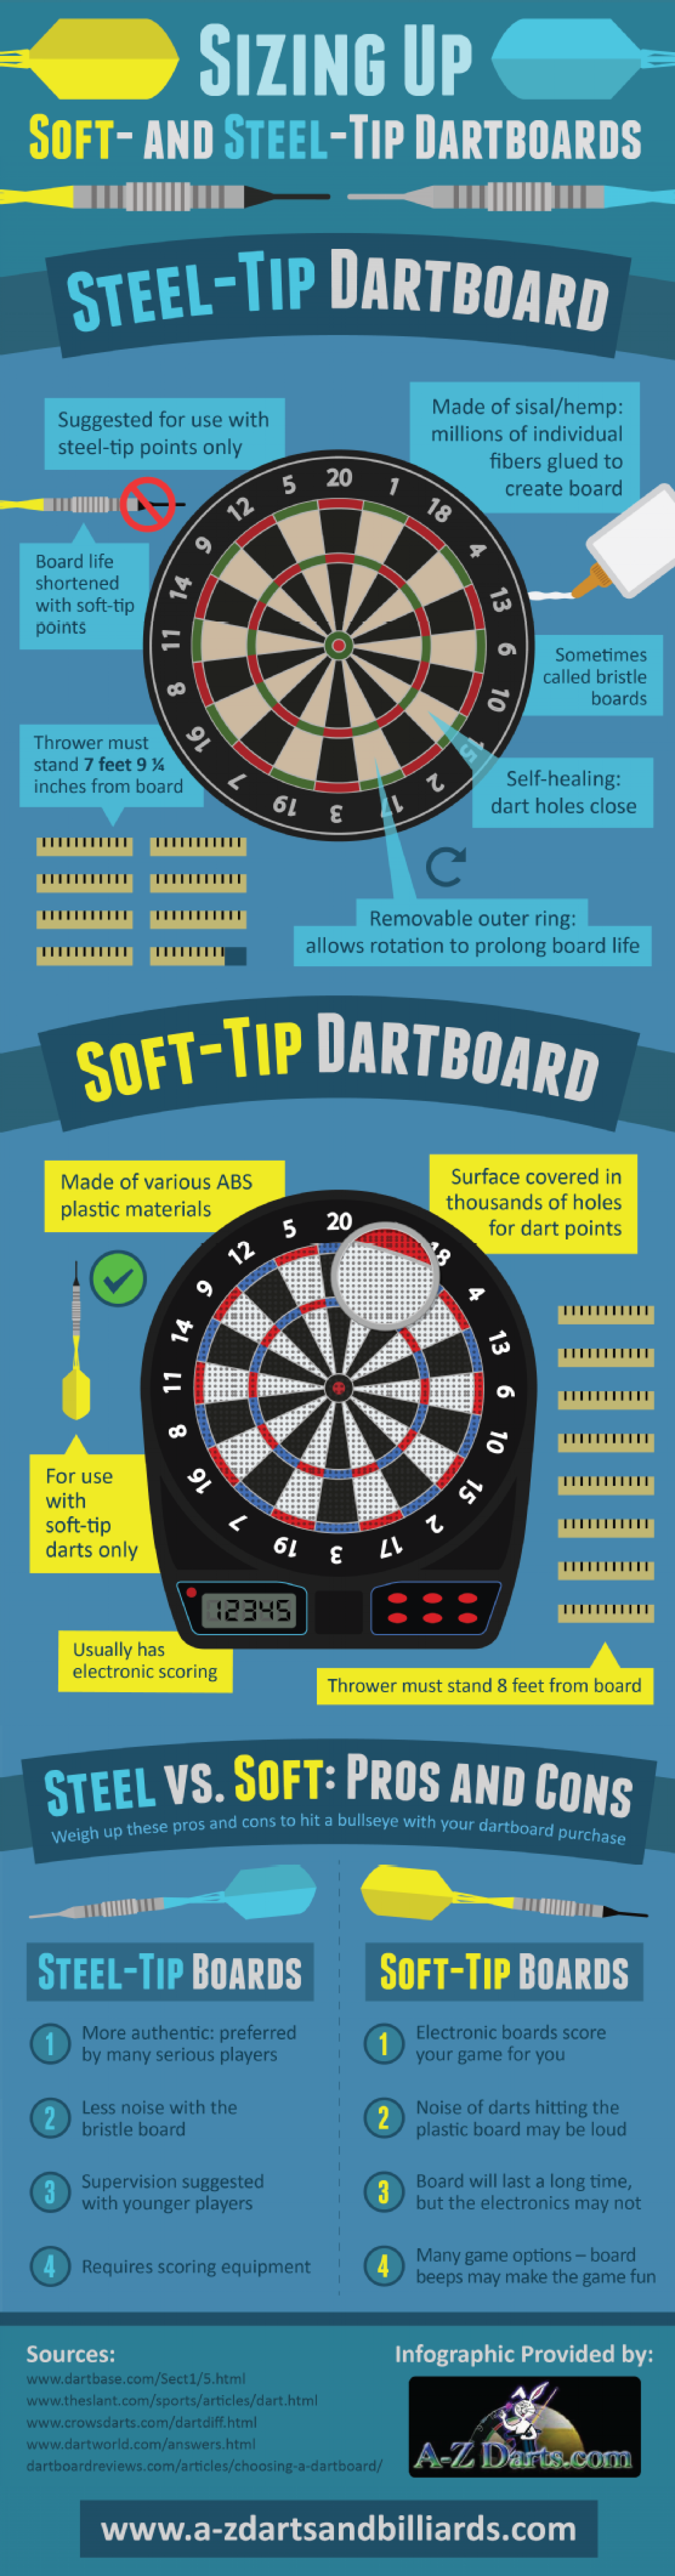 Sizing Up Steel- and Soft-Tip Dartboards Infographic